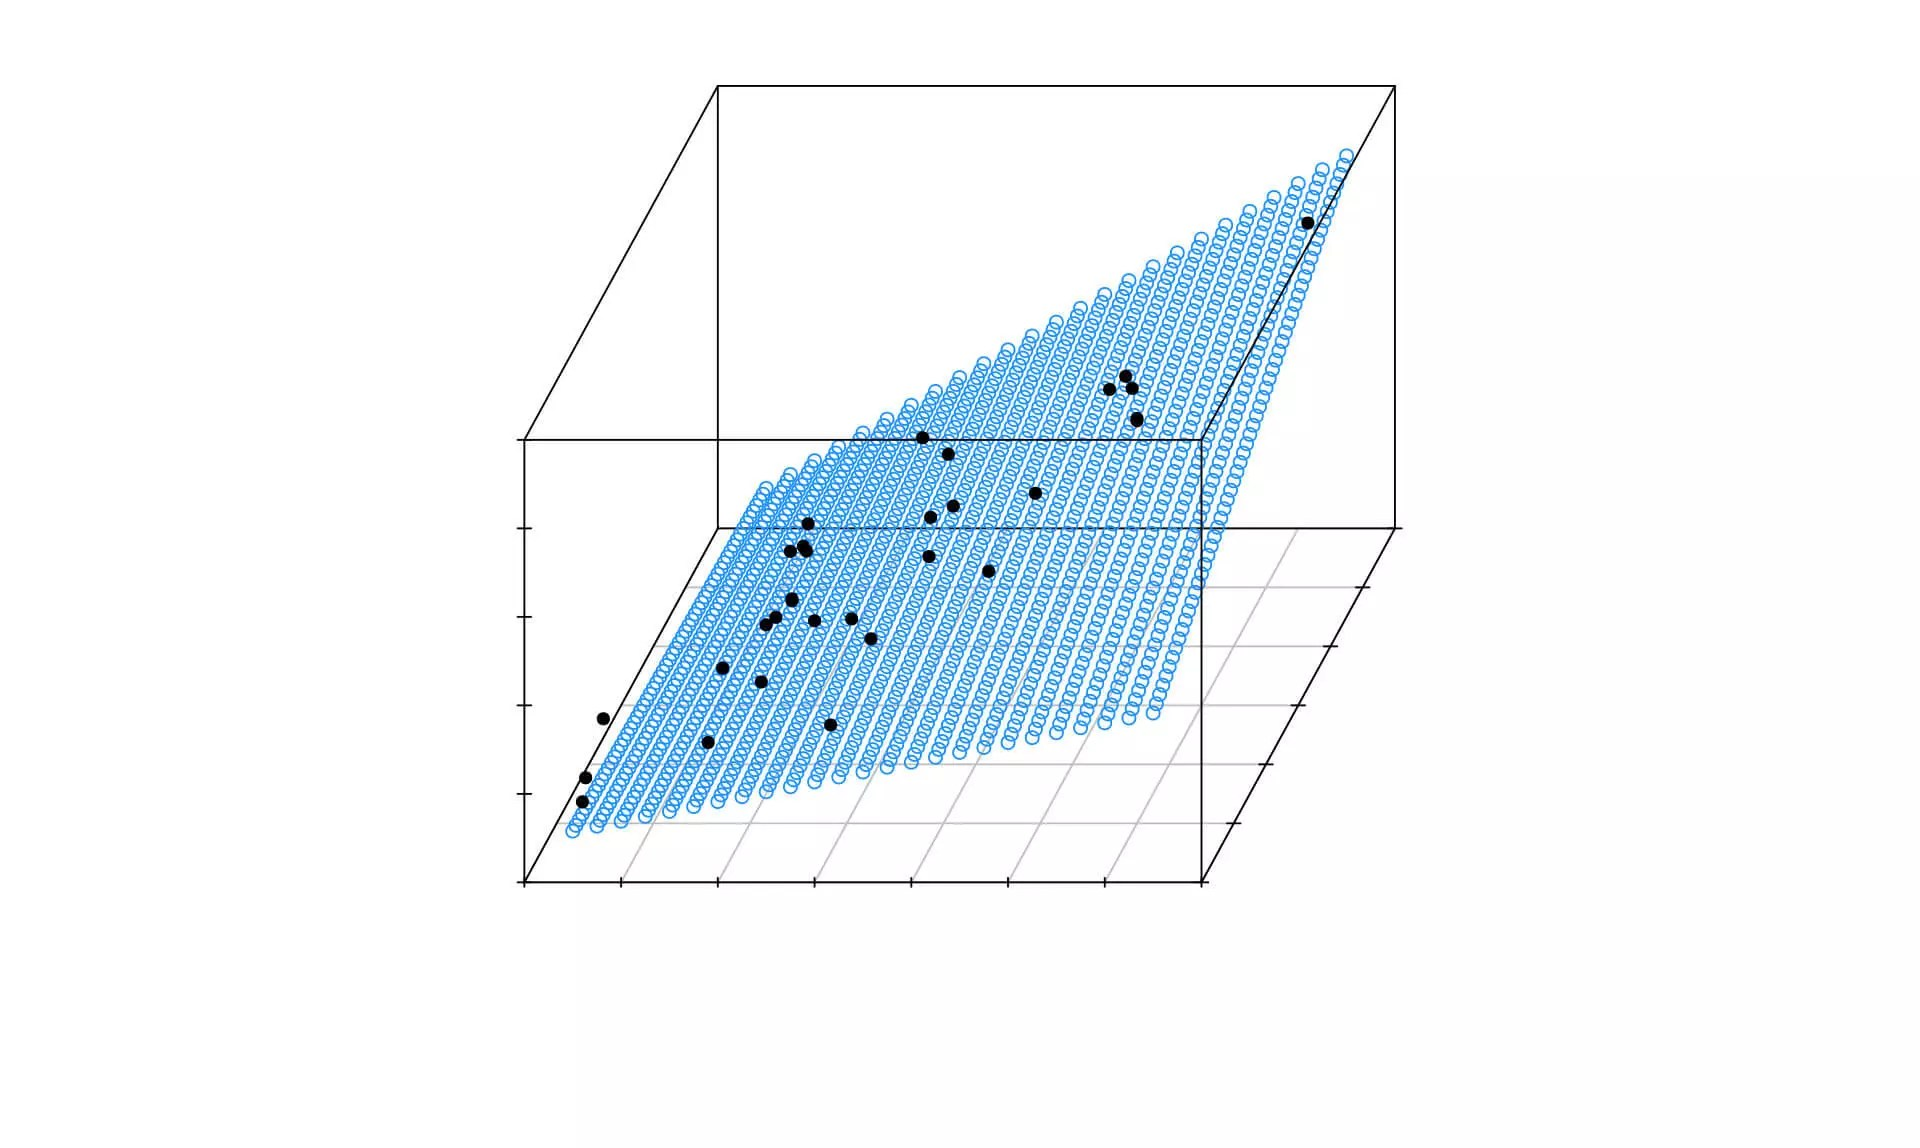 Linear Regression For Predictive Modeling In R